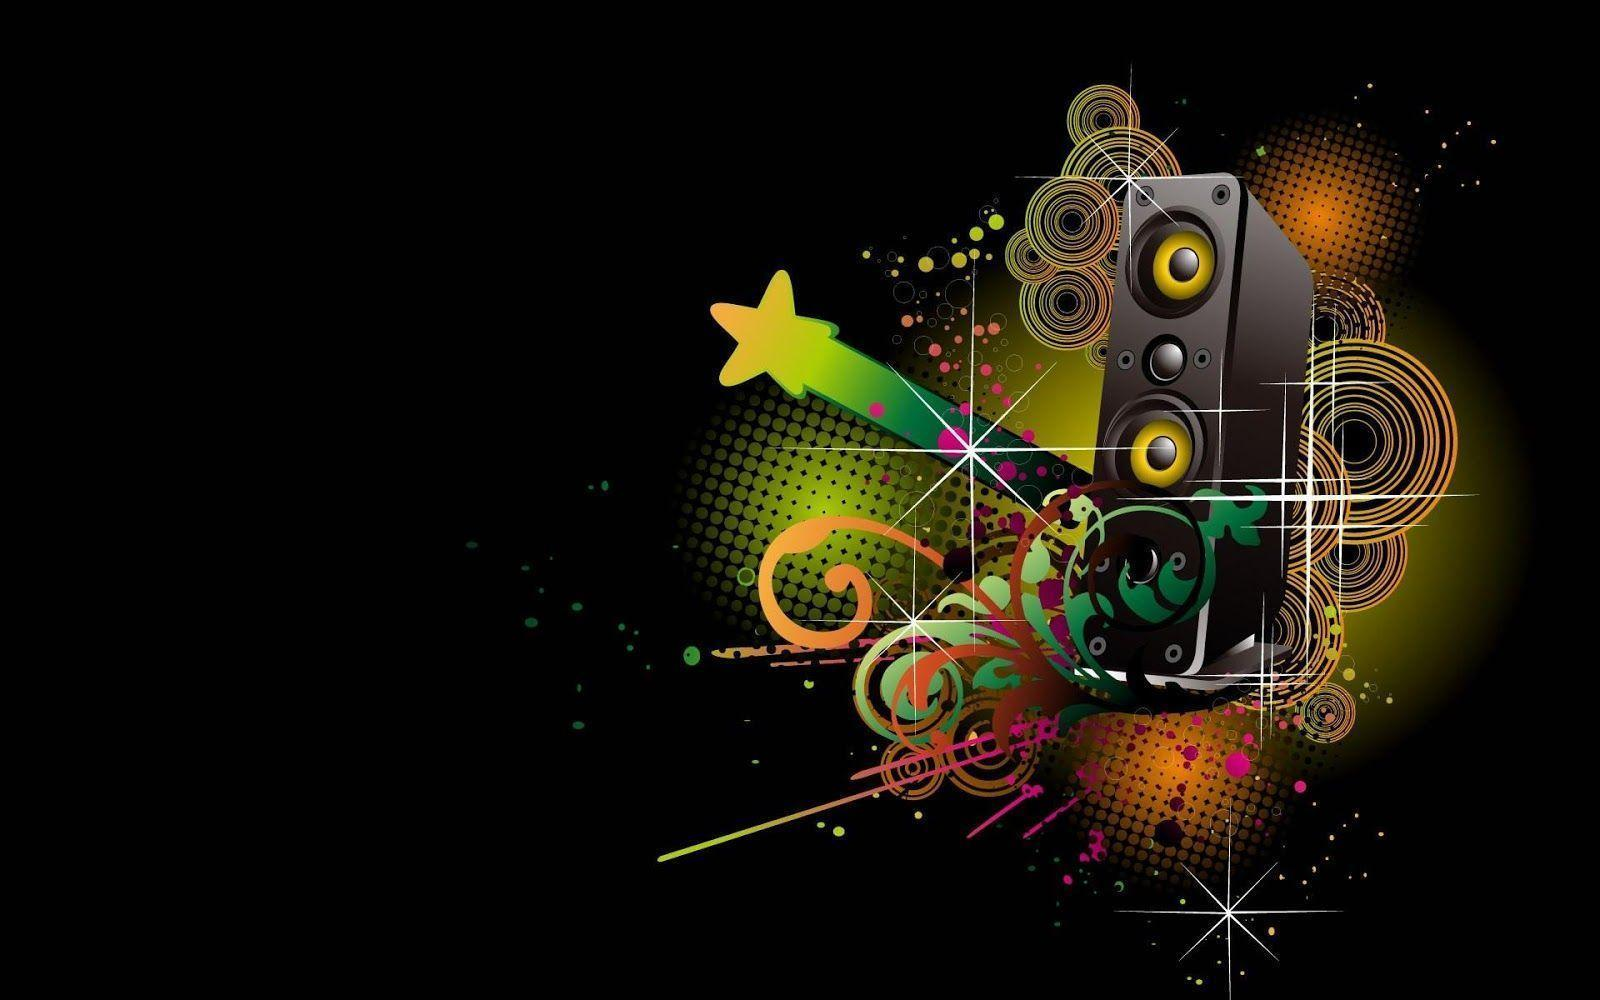 Music Background Images: Cool Music Backgrounds Wallpapers